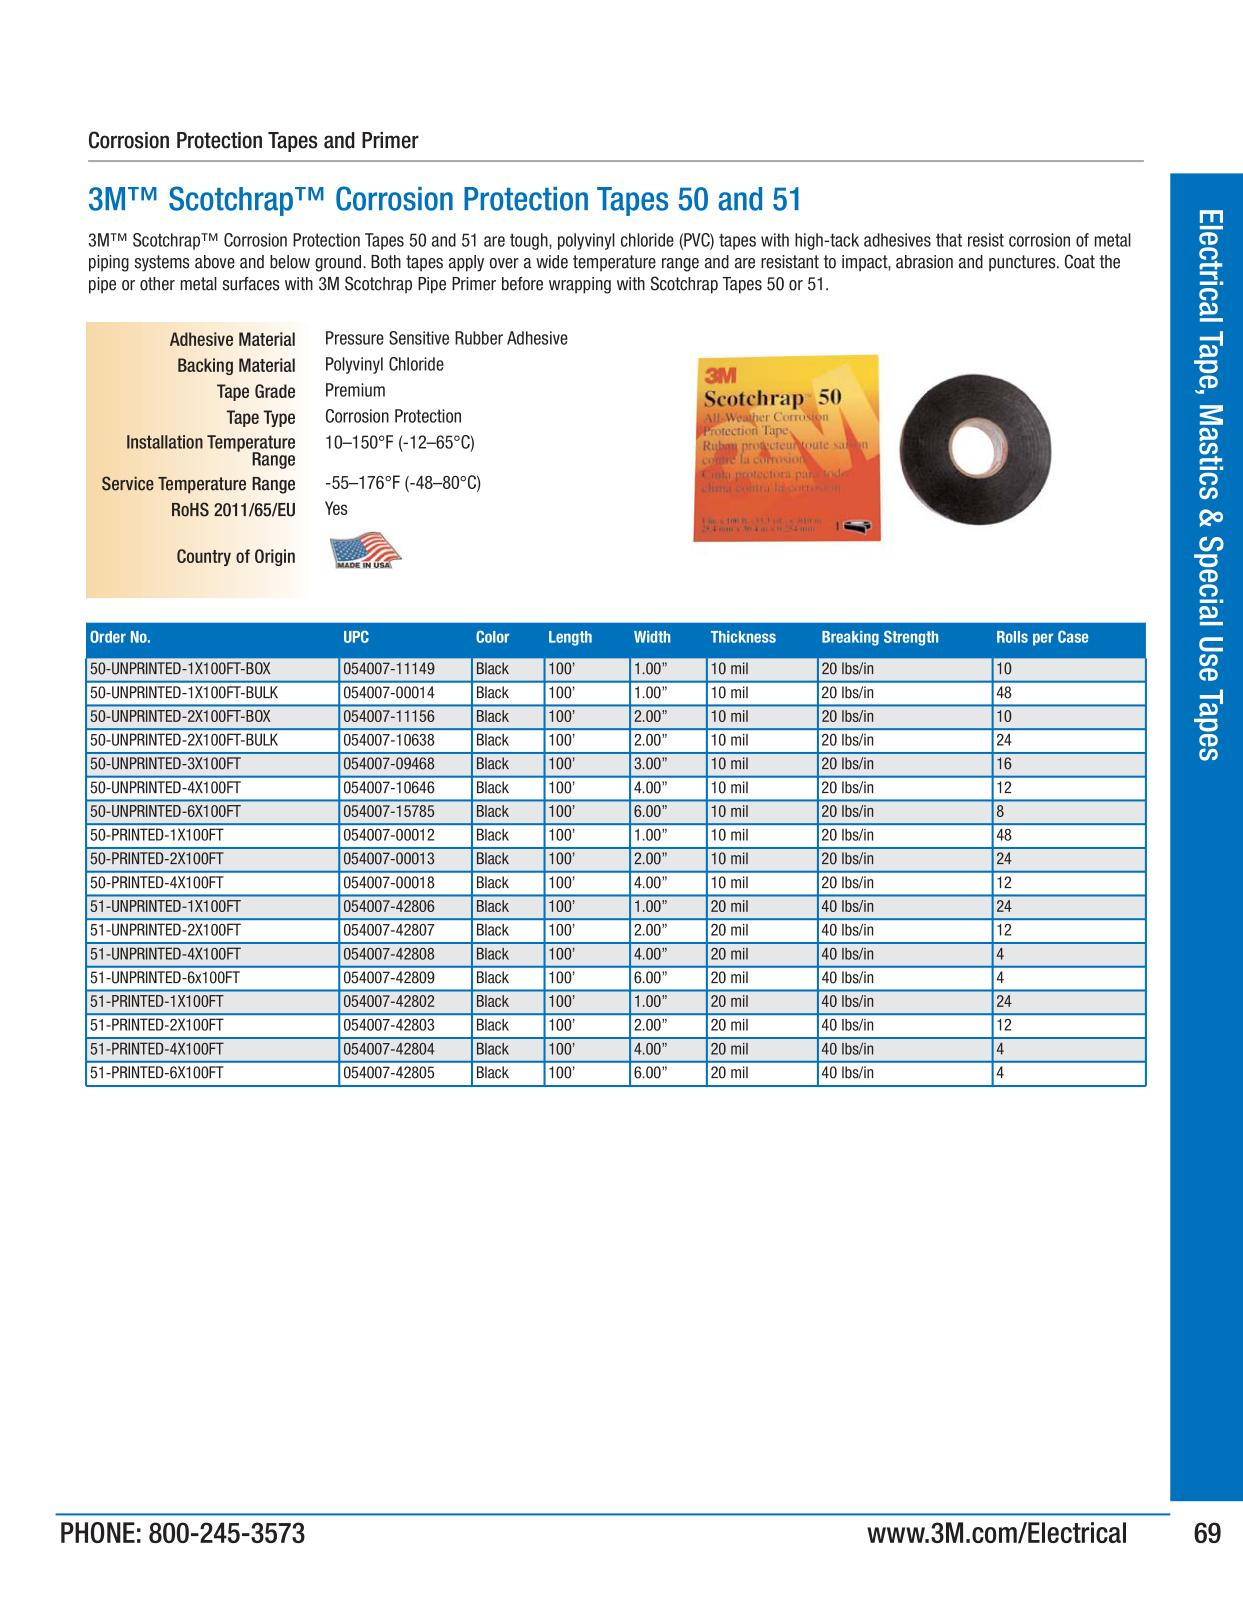 3M Electrical Products Page 68 - Electrical Tape, Mastics and ...